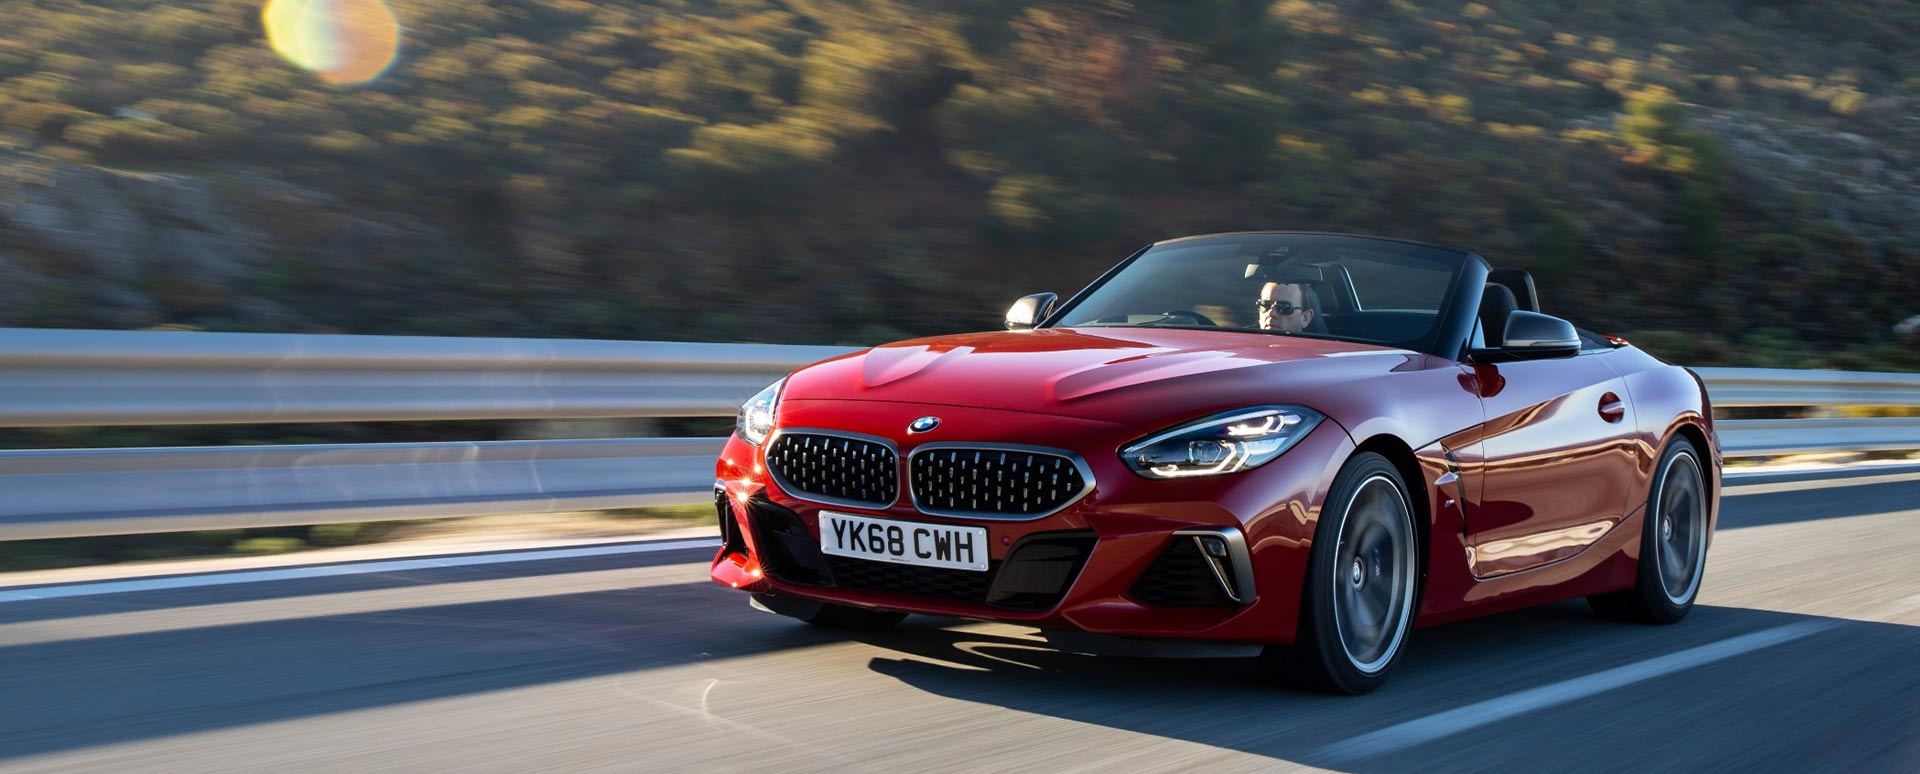 red bmw z4, driving